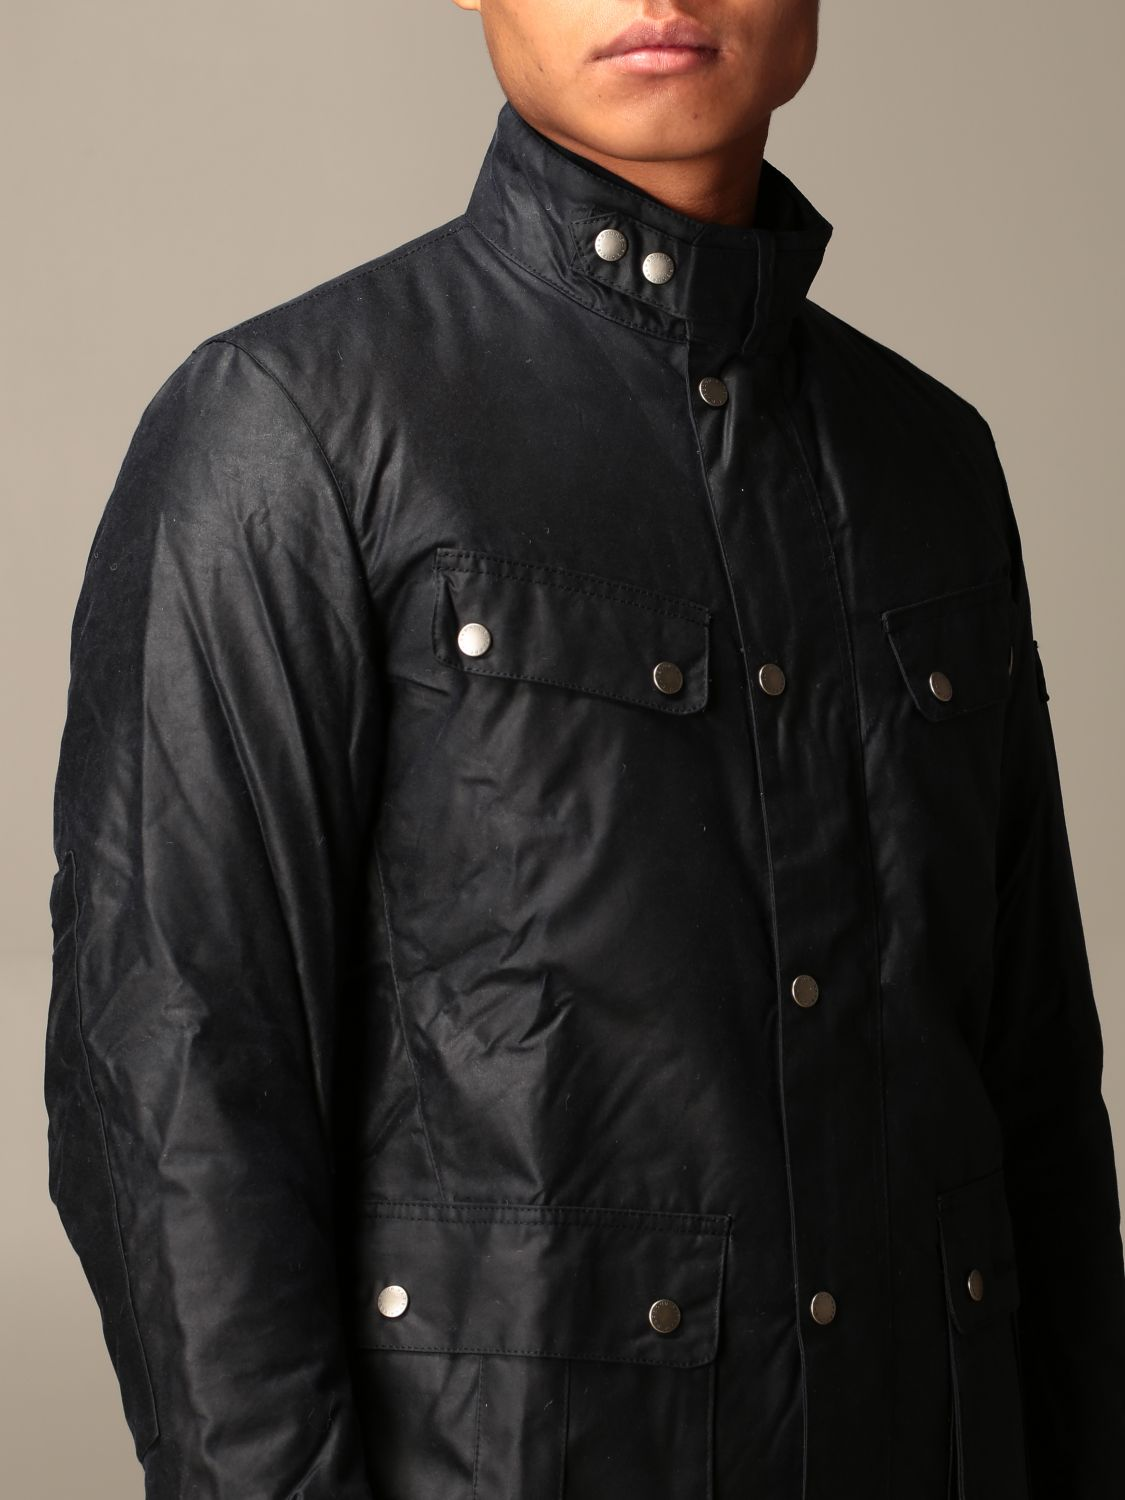 Jacket Barbour: Jacket men Barbour blue 4